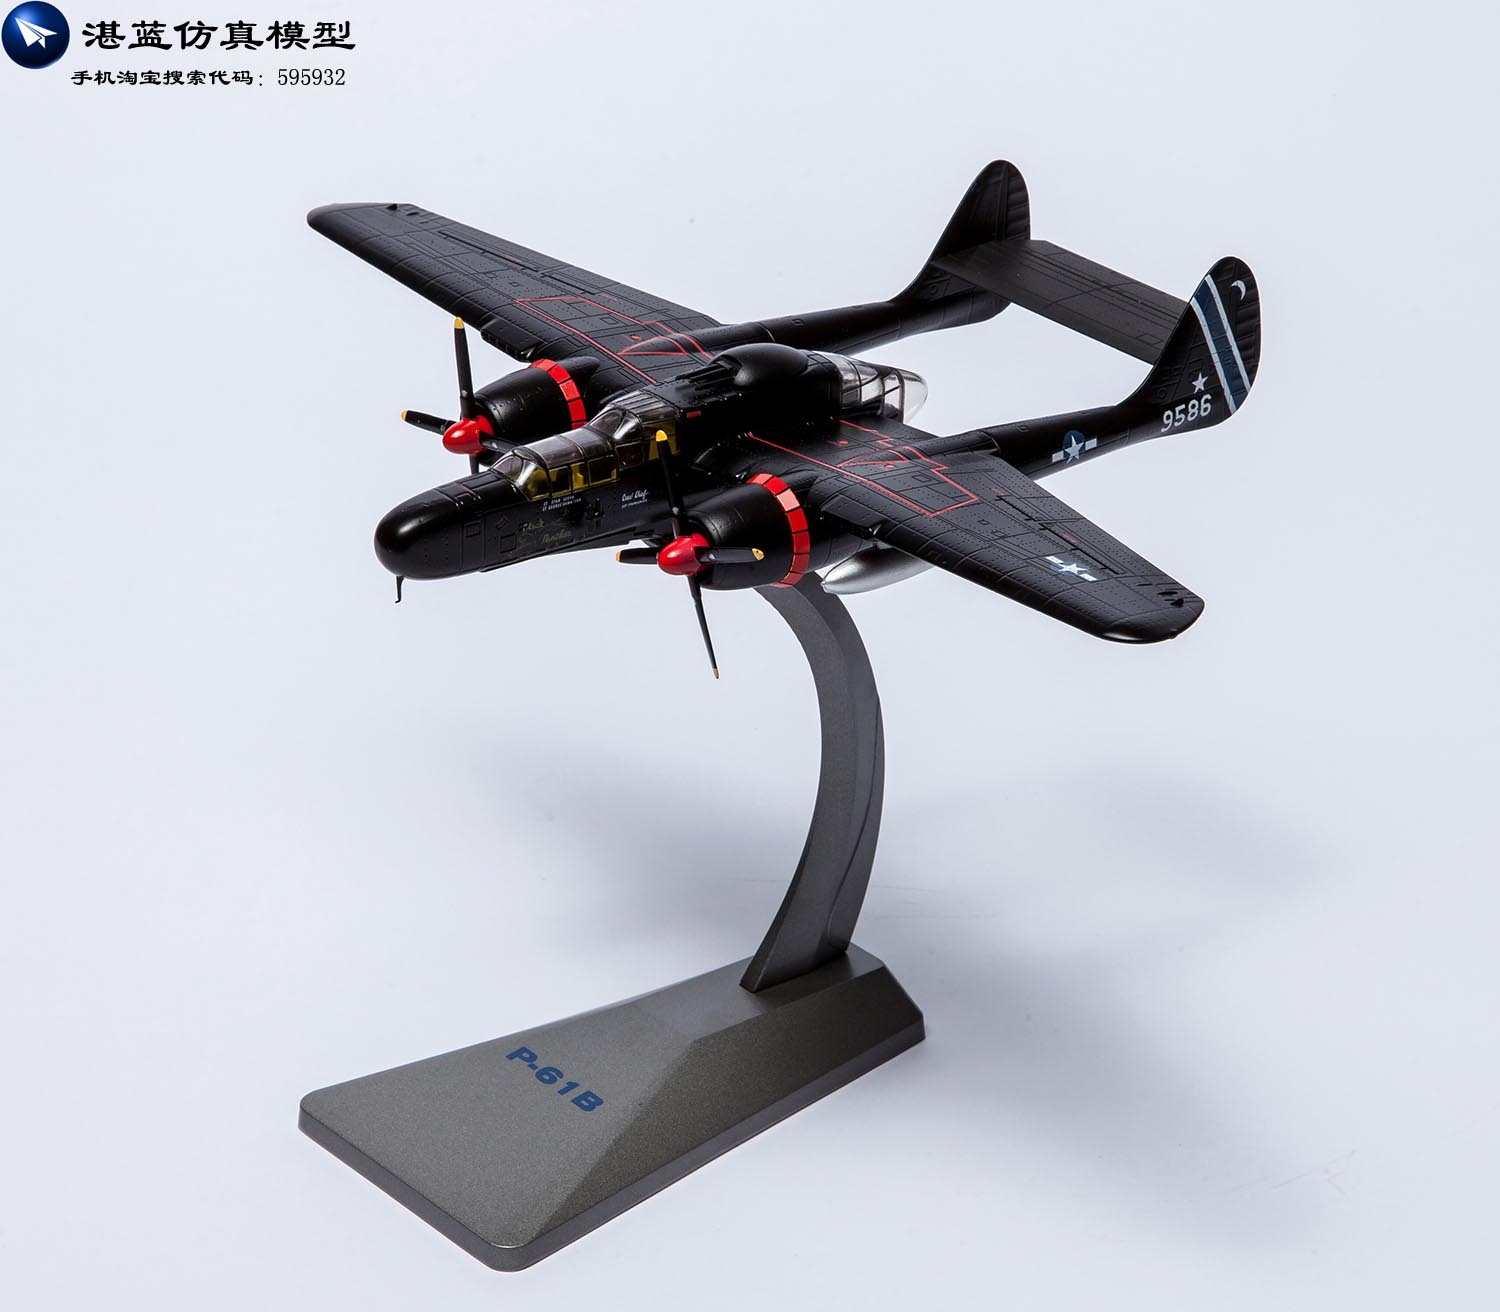 Brand New 1/72 Scale Plane Model Toys World War II P-61 Black Widow Fighter Diecast Metal Plane Model Toy For Collection/Gift планшет digma plane 1601 3g ps1060mg black